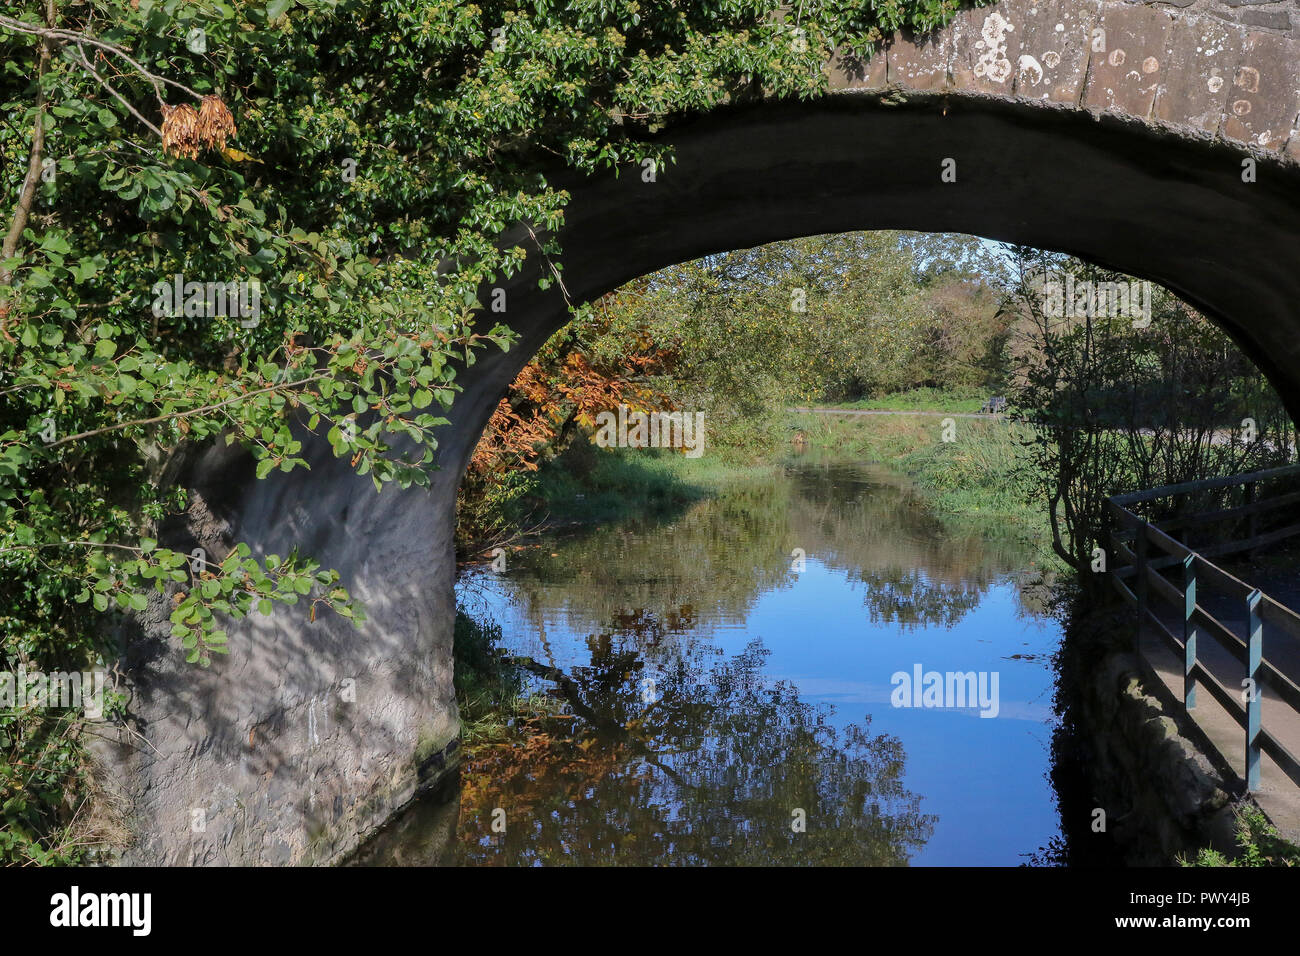 The Broadwater, Moira, Northern Ireland. 18 October 2018. UK weather - a glorious sunny day with lots of blue sky over Moira. High pressure dominates meaning little wind and great weather for out and about. Bridge over canal with Autumn colours in sunshine. Credit: David Hunter/Alamy Live News. - Stock Image